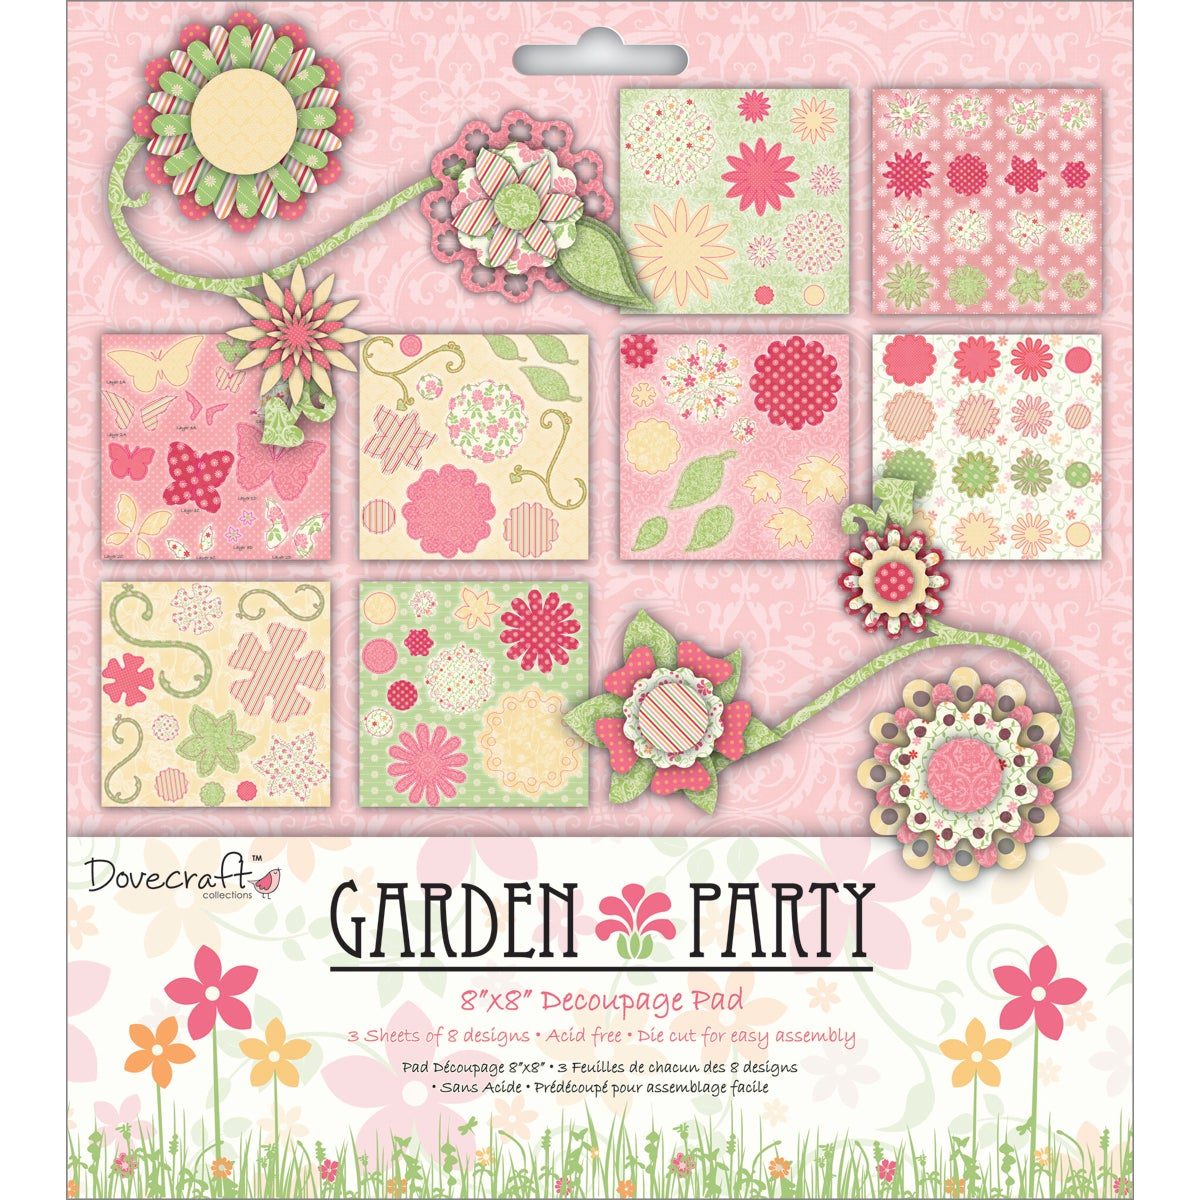 Shop Garden Party Decoupage Paper Pad Free Shipping On Orders Over